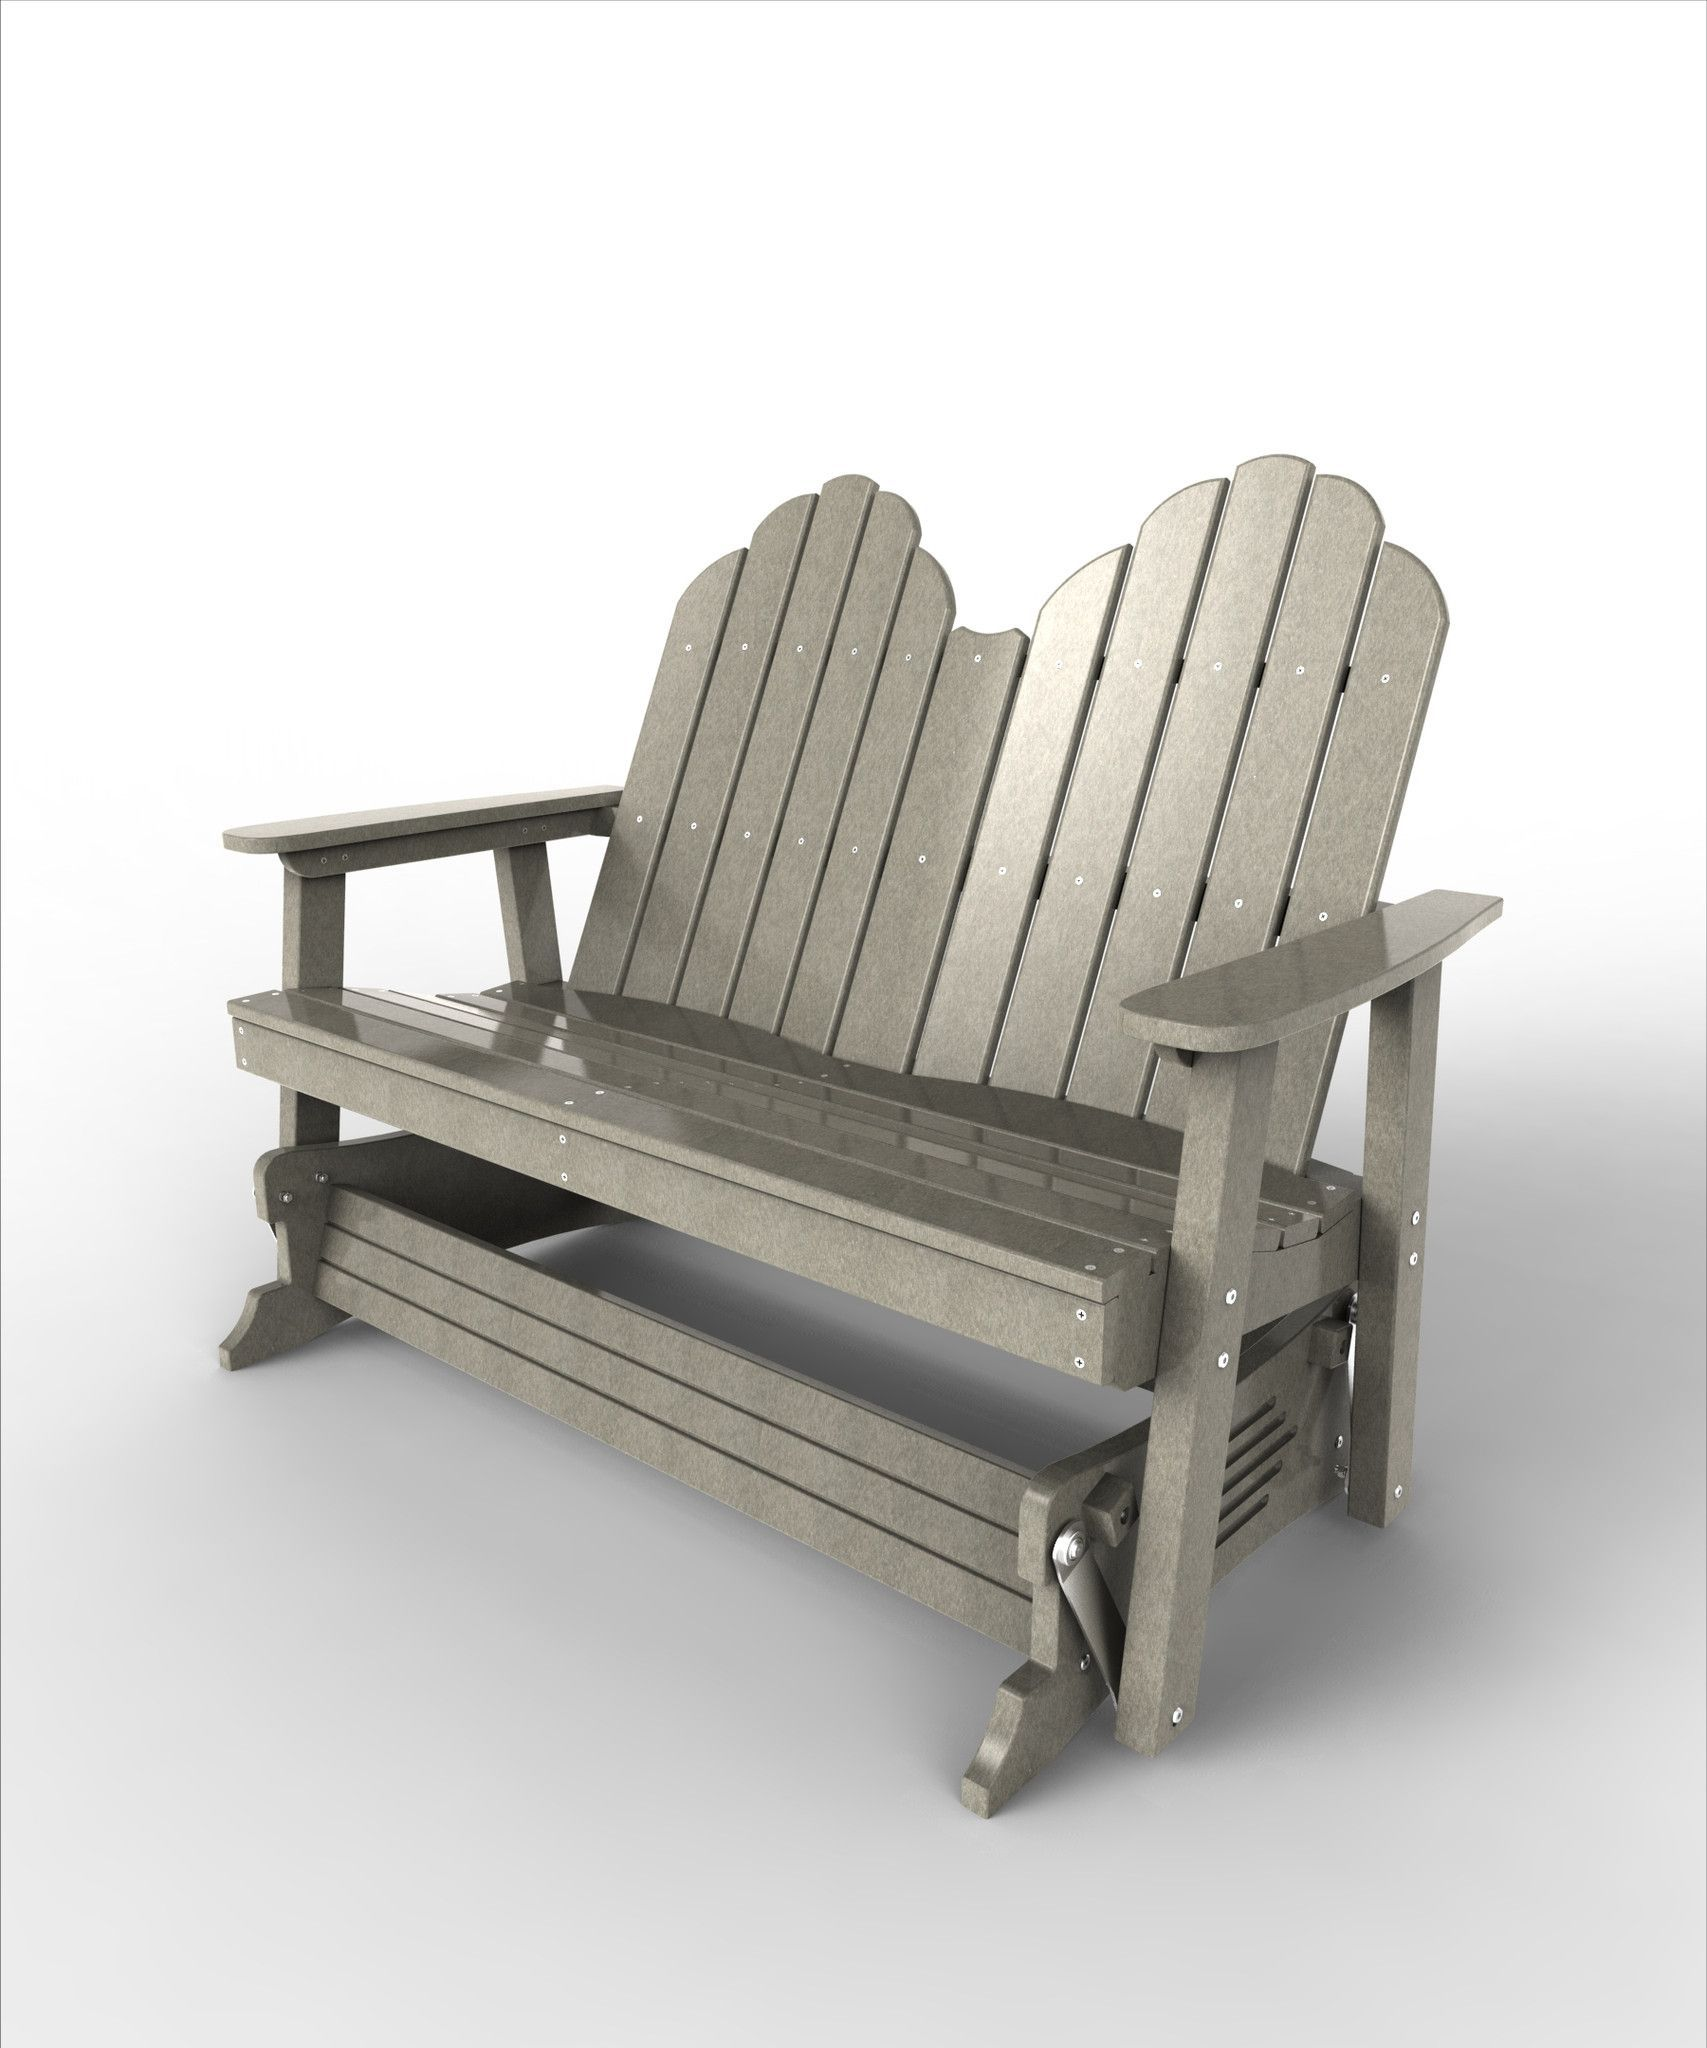 Malibu Outdoor Living Yarmouth Double Patio Glider Chair